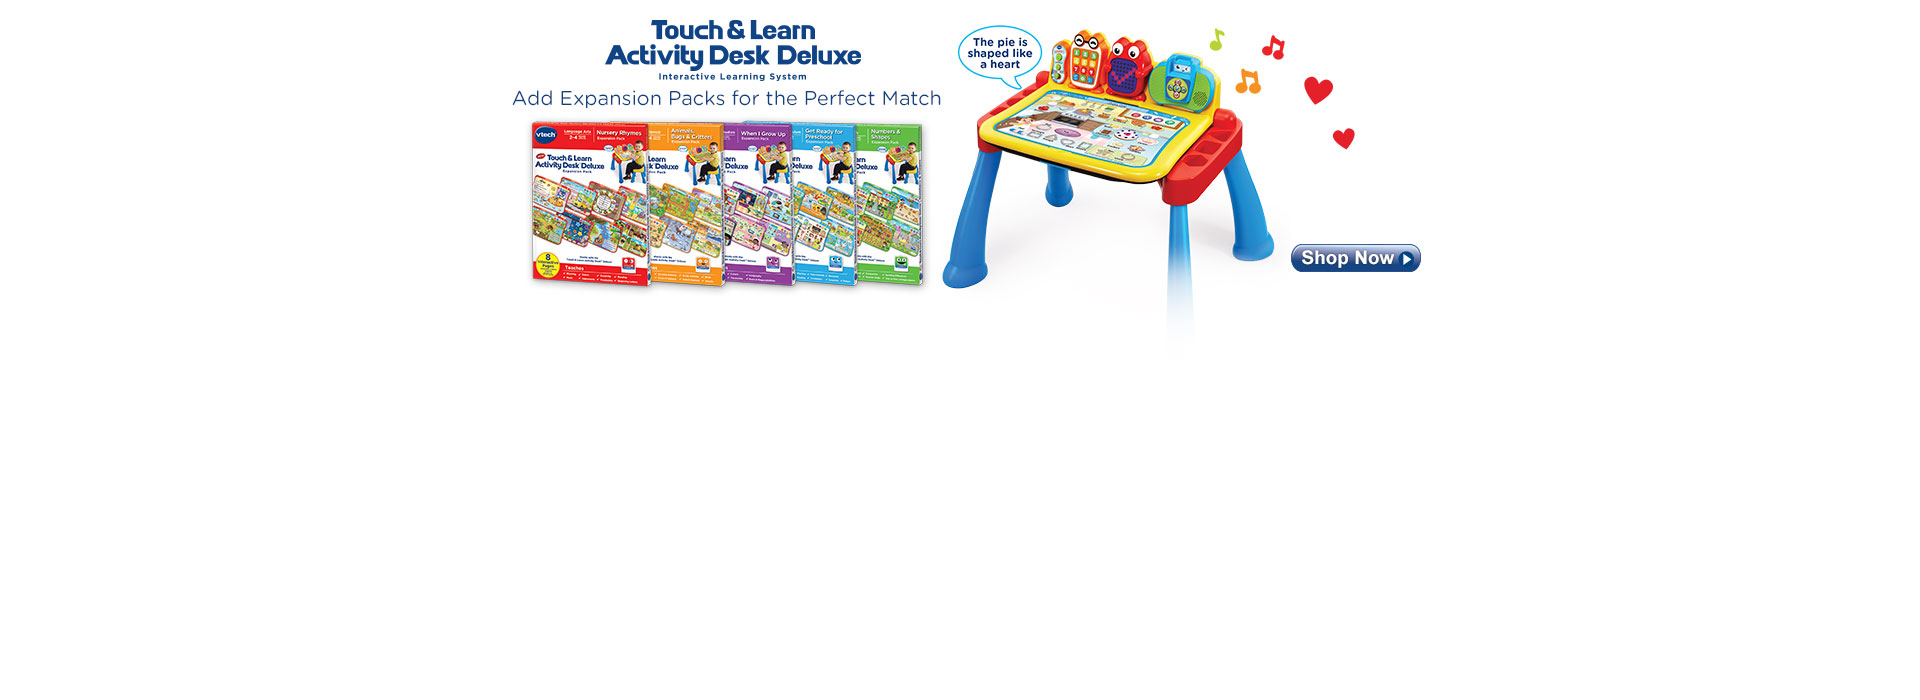 Expand your Touch & Learn Activity Desk with new Expansion Packs